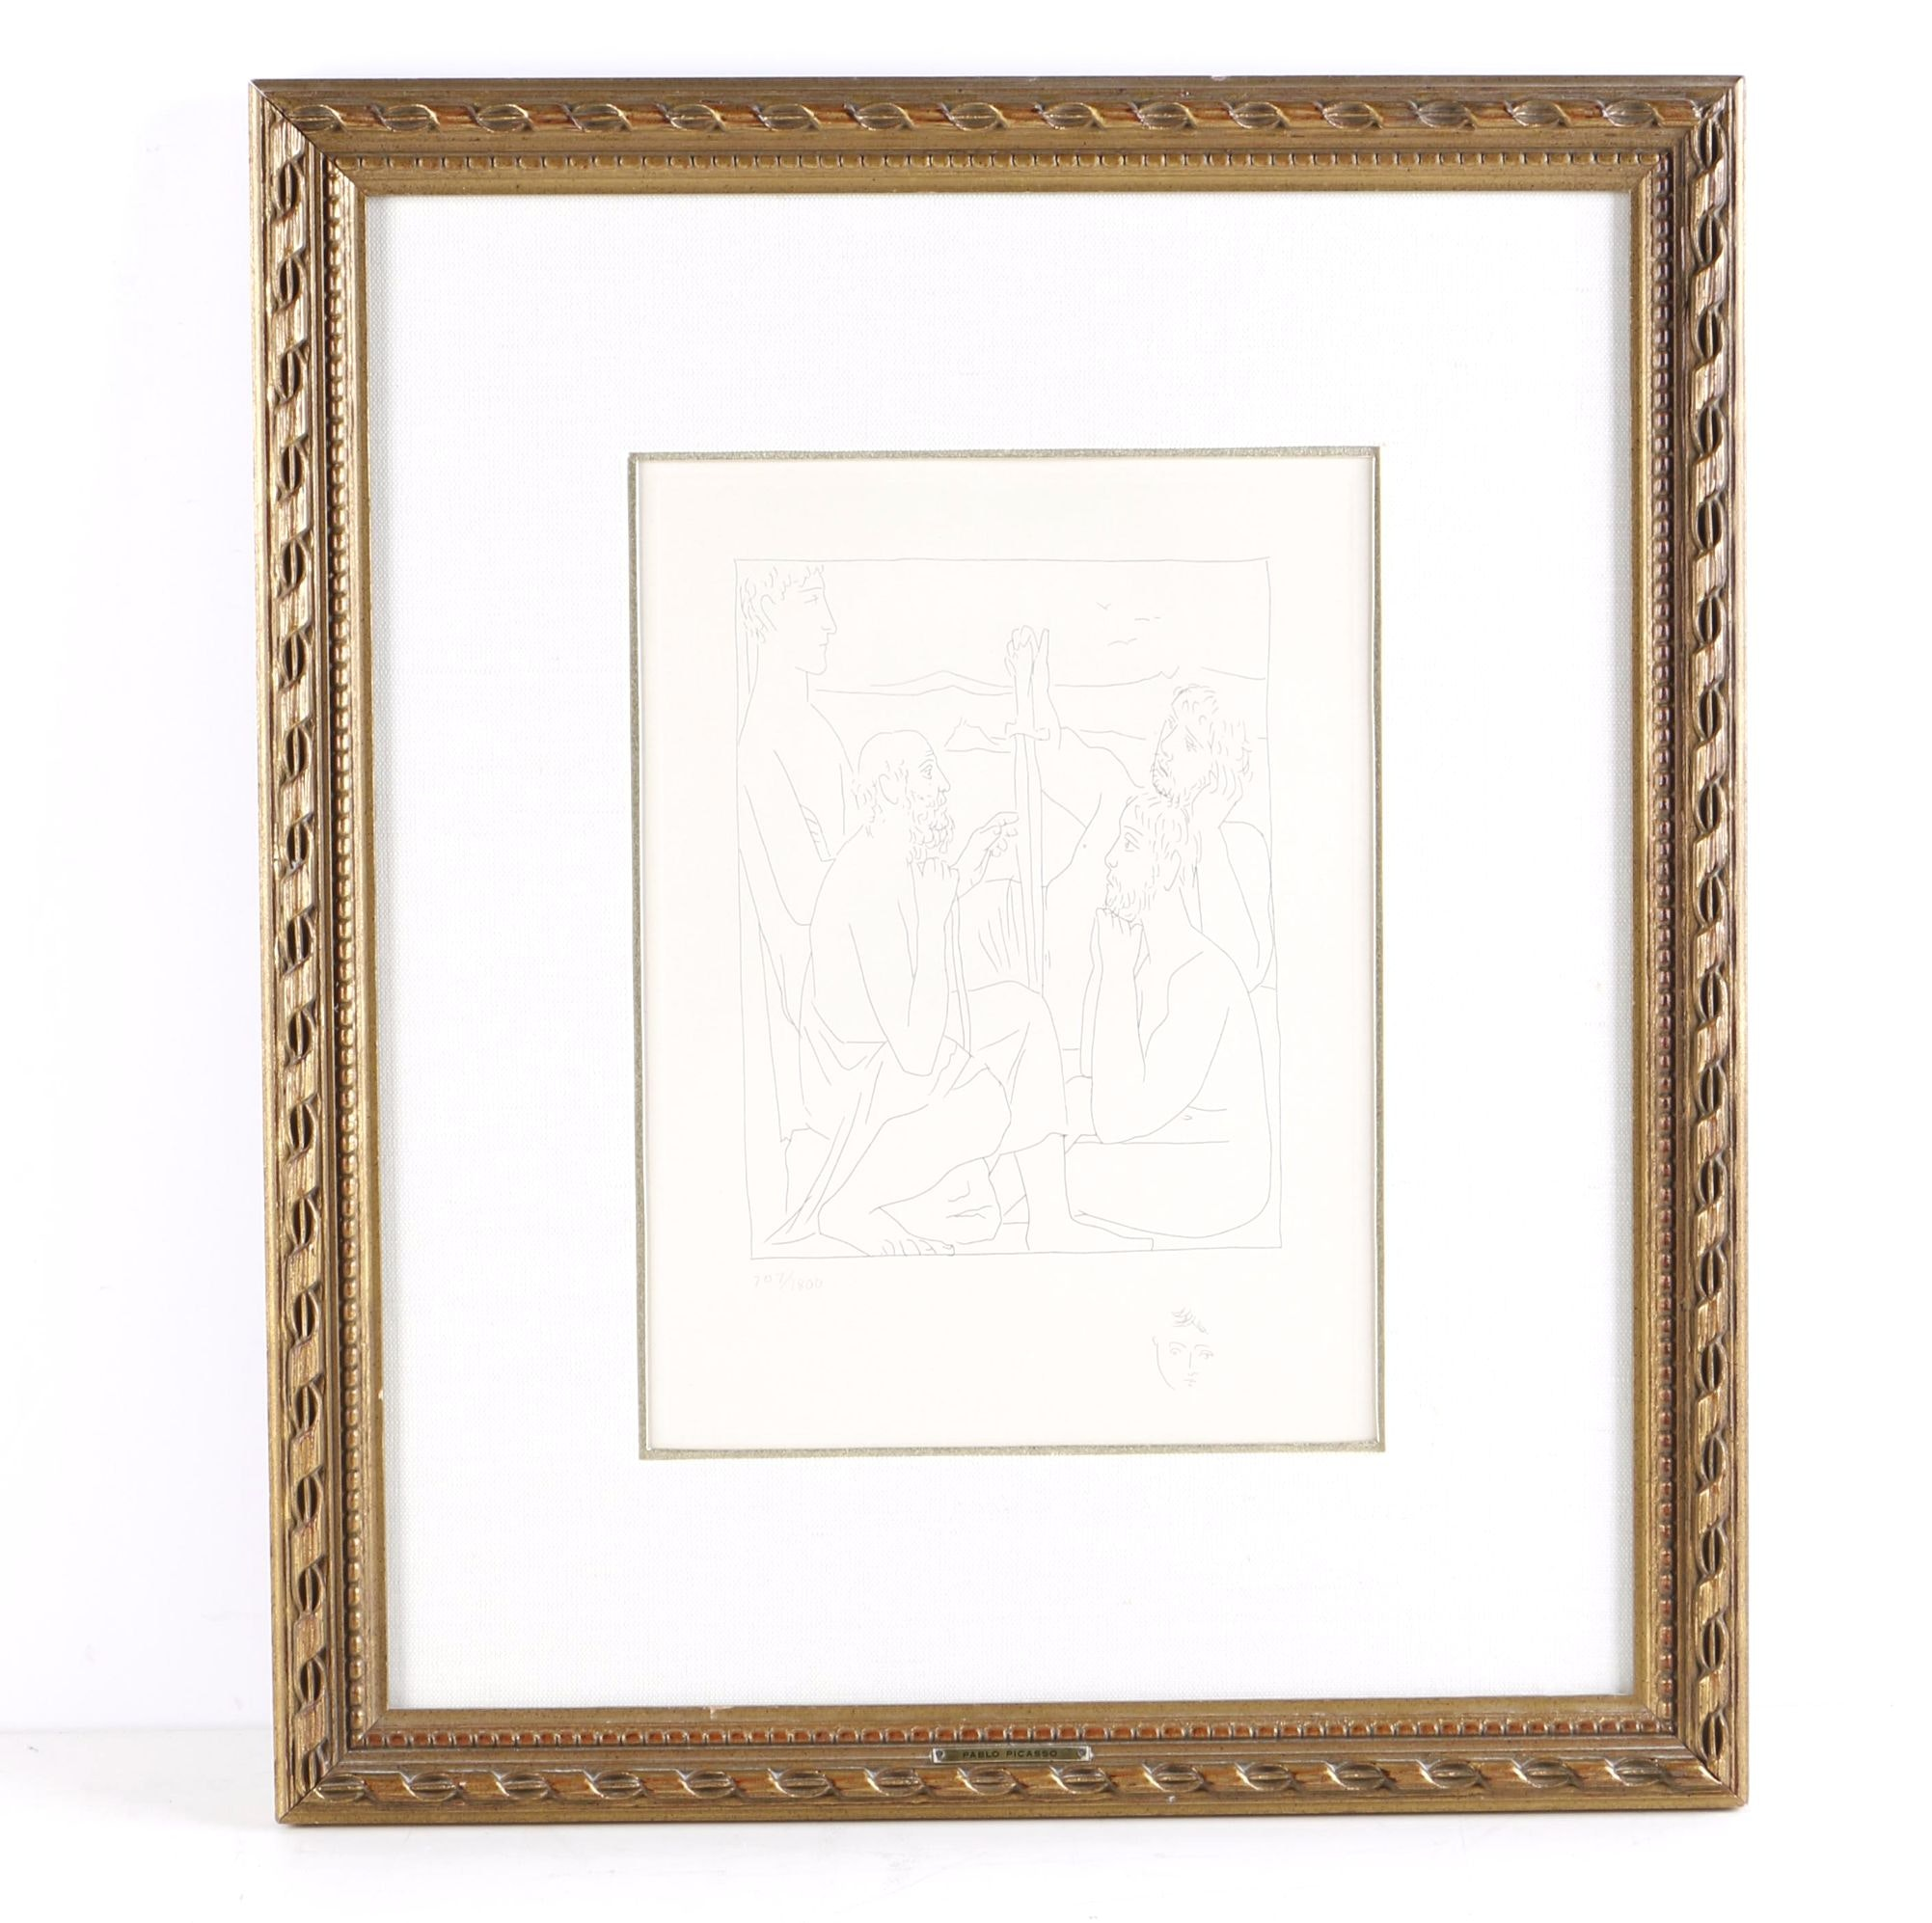 "Restrike After Picasso Limited Edition Etching on Paper ""Nestor's Tales of the Trojan War"""